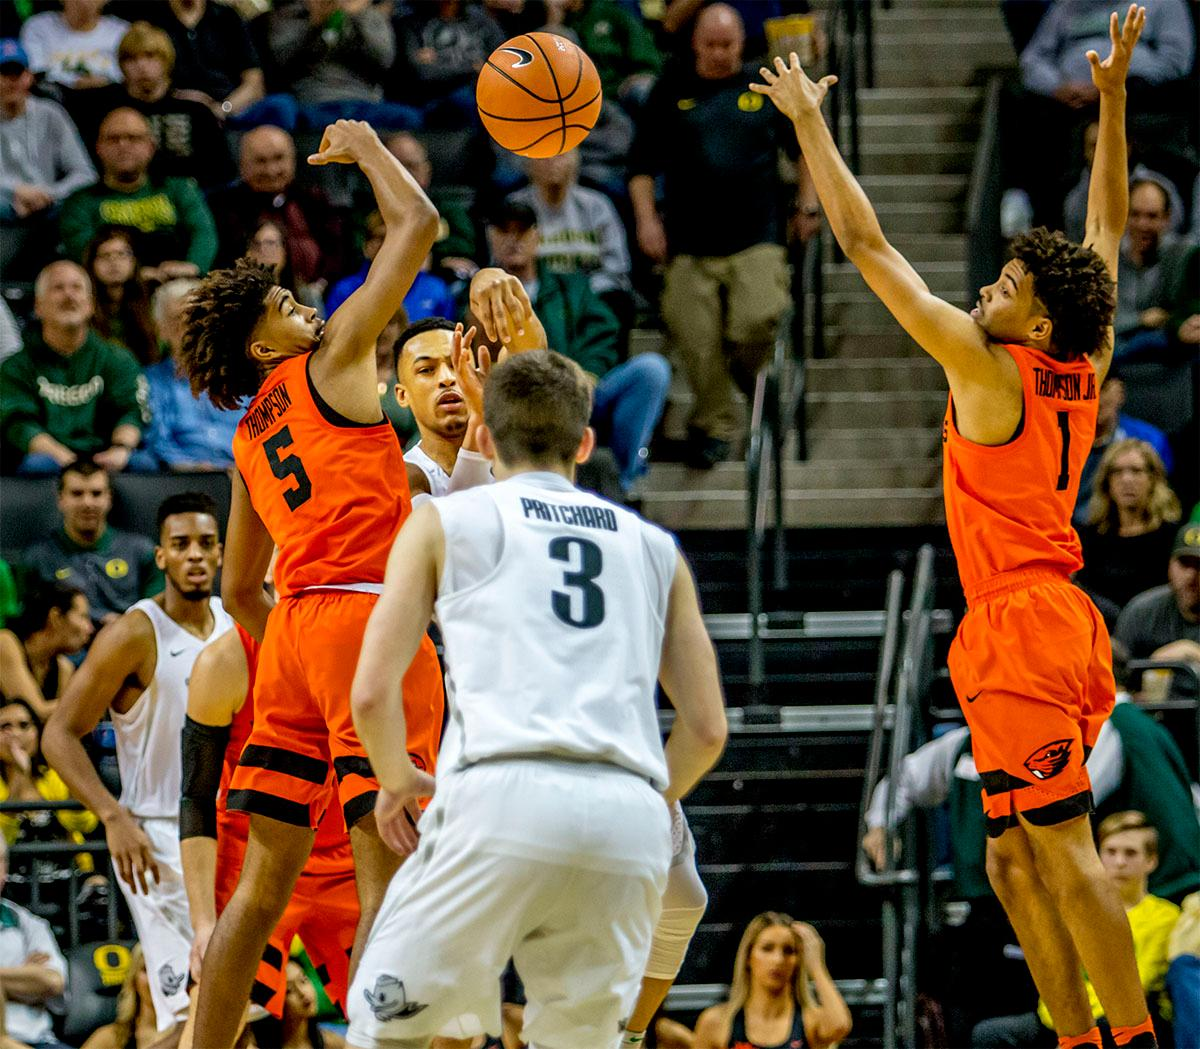 The Duck's Elijah Brown (#5) passes to teammate Payton Pritchard (#3). The Ducks defeated the Beavers in the civil war game, 66-57, at Matthew Knight Arena on Saturday night. Elijah Brown scored a game high of 20 points with 18 of the points coming in the first half, Paul White added 17 points. The Ducks are now 14-7 overall and 4-4 in conference play. The Ducks will next face California on Thursday Feb. 1 at 6:00 p.m. Photo by August Frank, Oregon News Lab